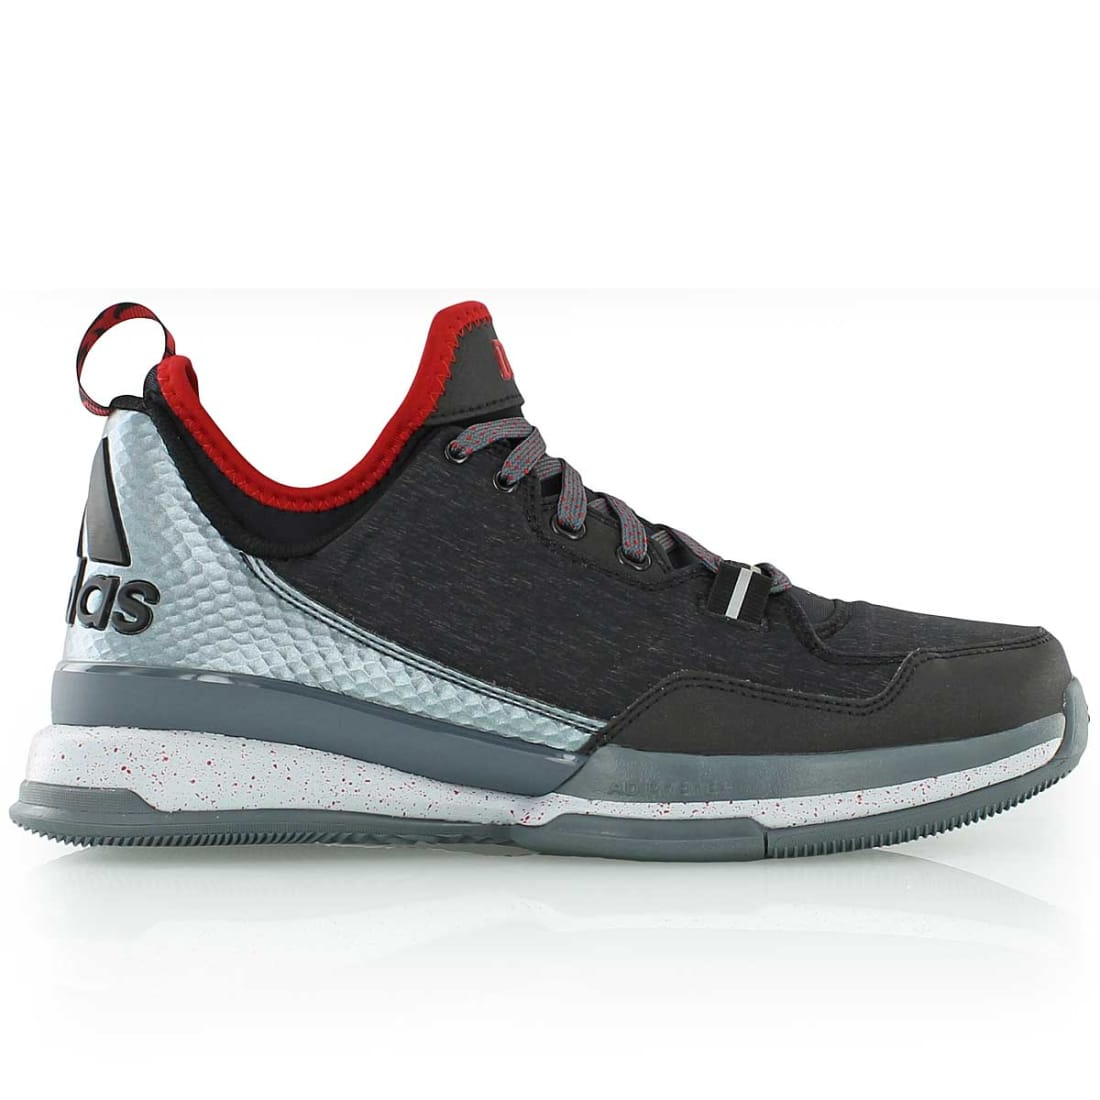 The Perfect adidas D Lillard 1 for Portlanders | Sole Collector